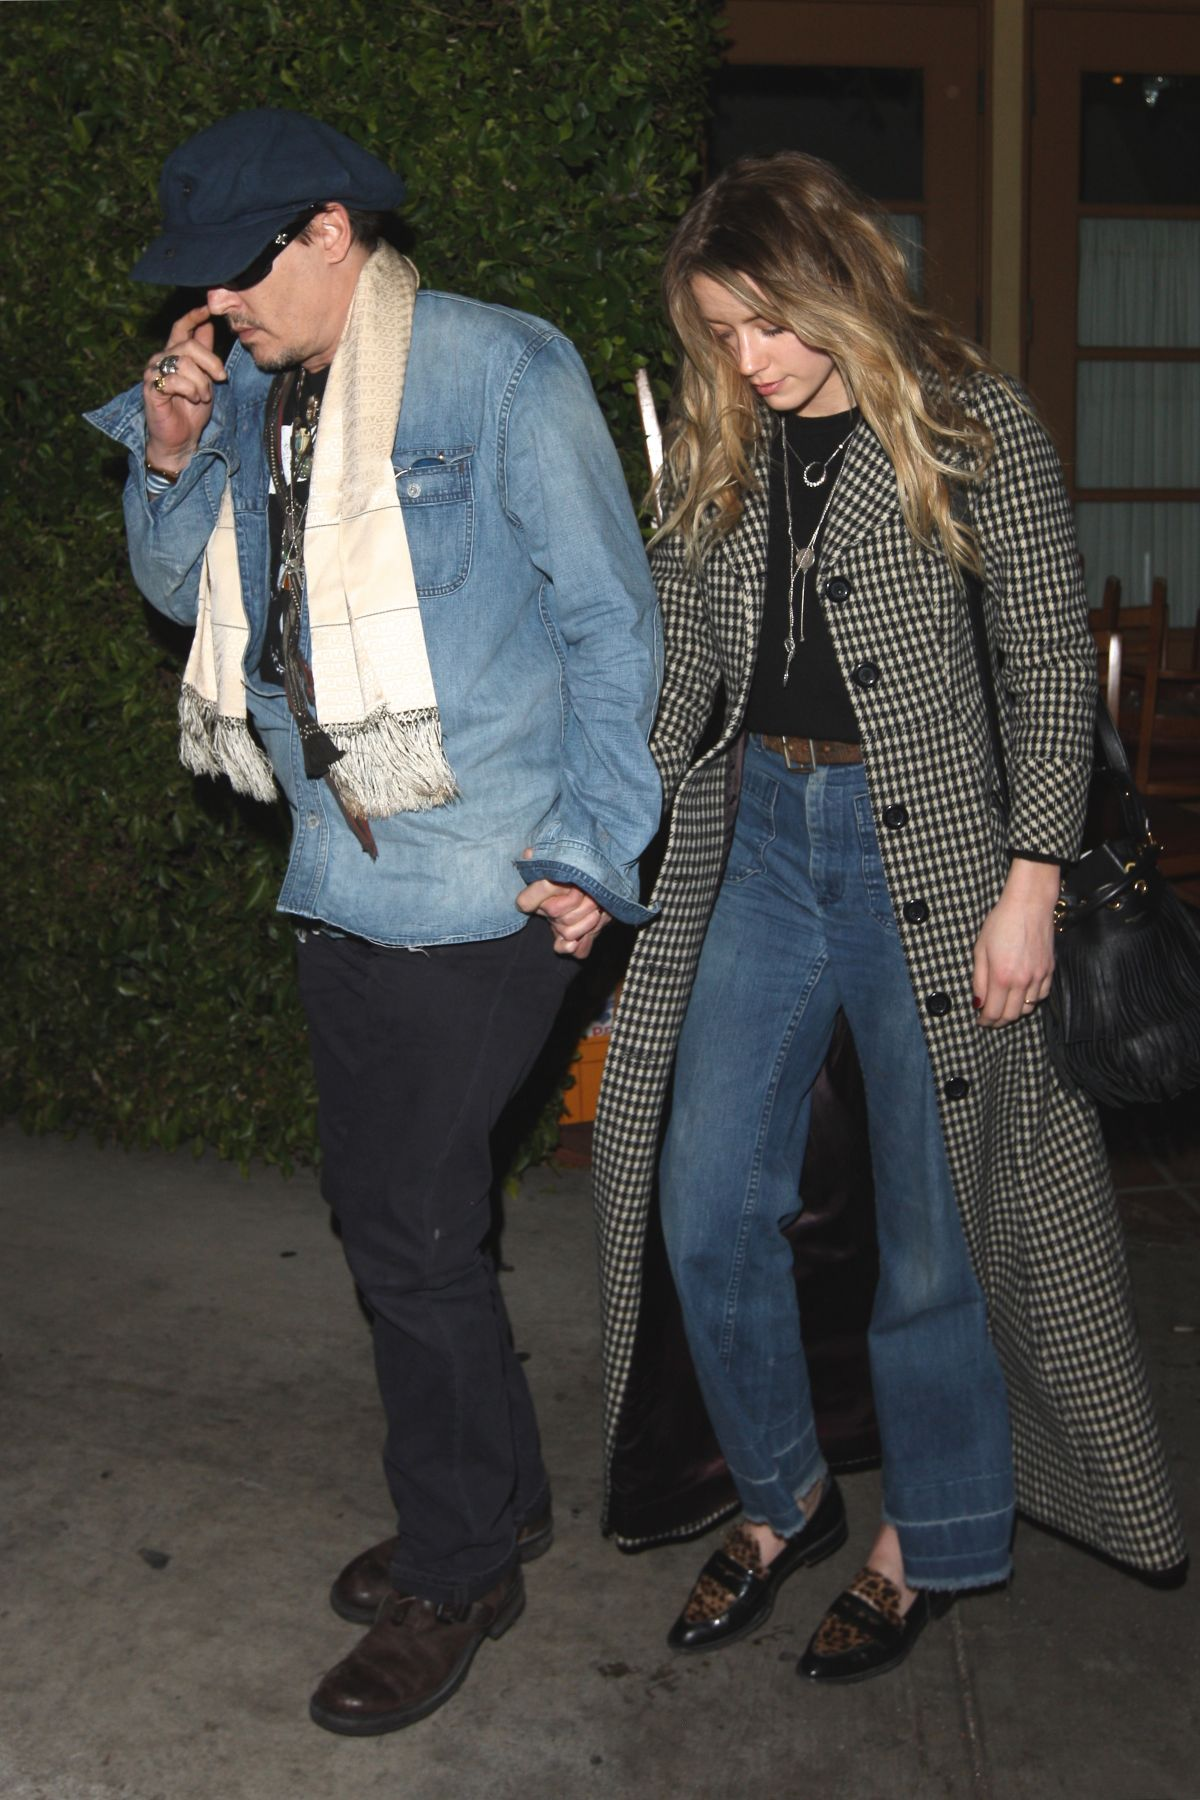 AMBER HEARD and Johnny Depp Leaves a Restaurant in West Hollywood 12/15/2015